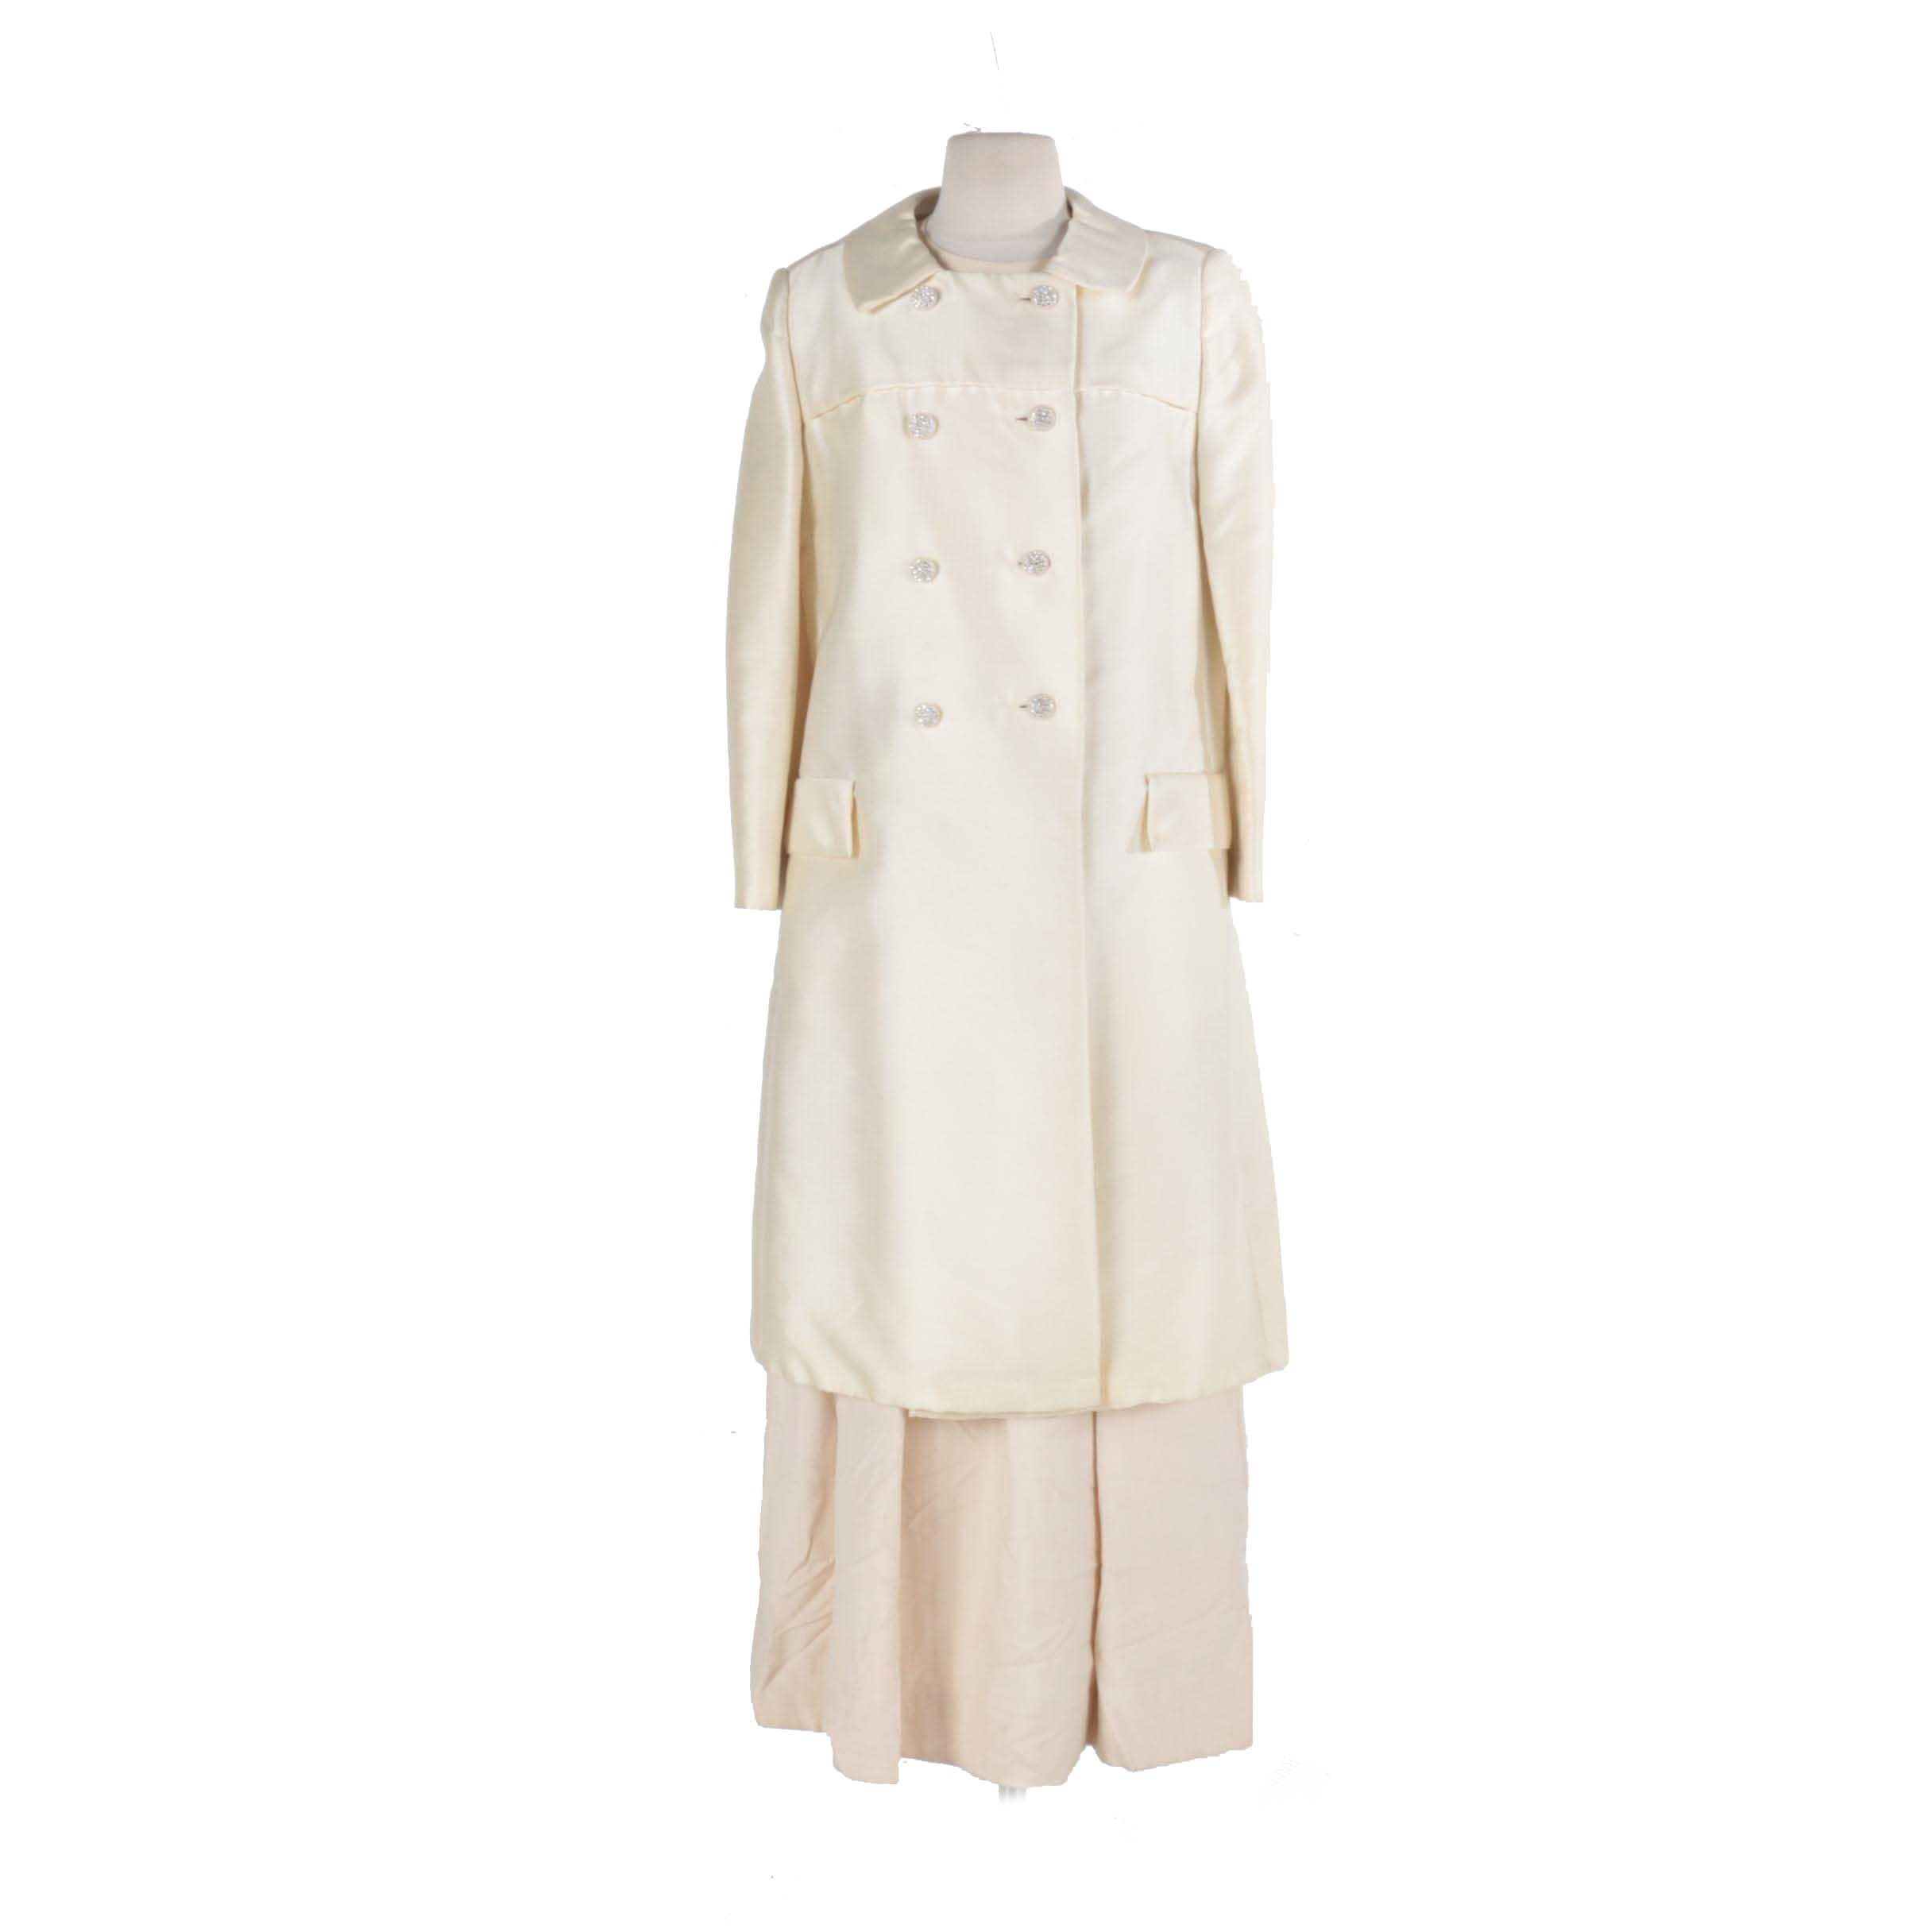 Vintage Women's Coat and Dress